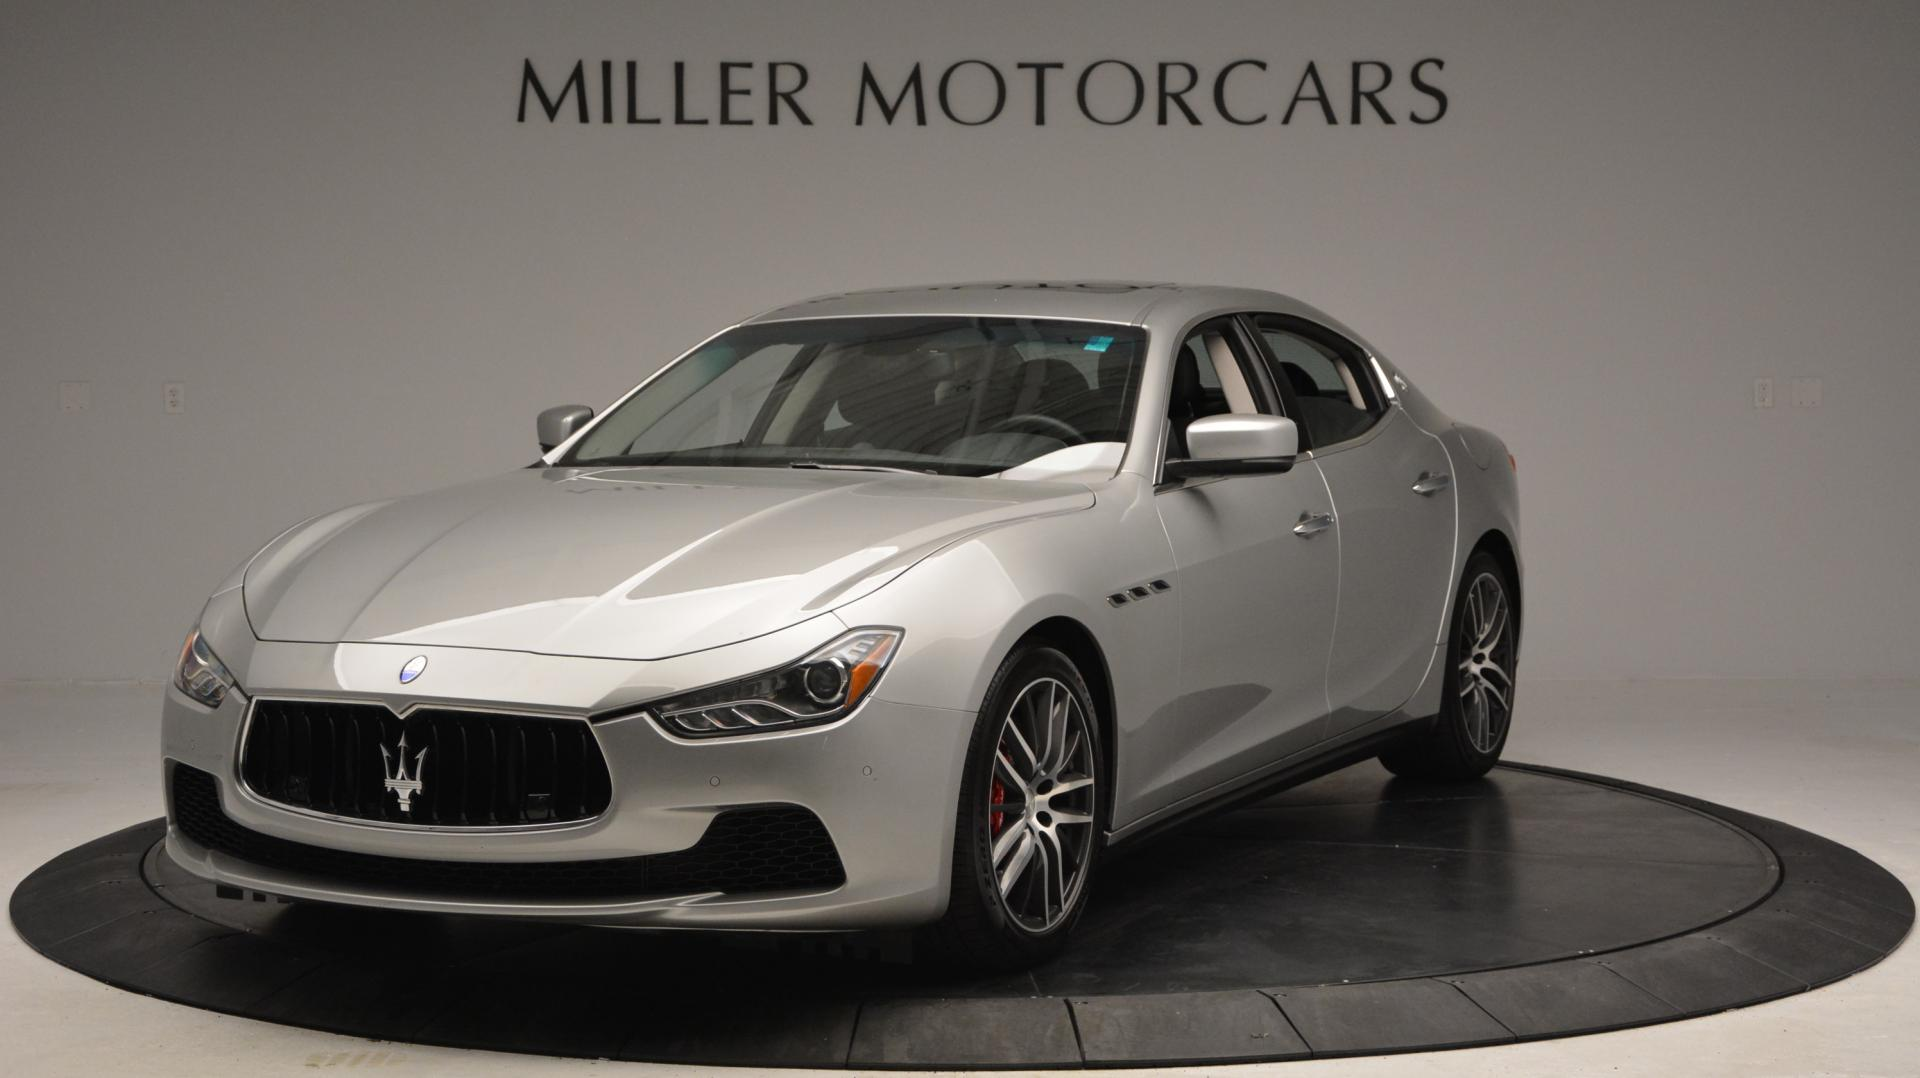 New 2016 Maserati Ghibli S Q4 For Sale In Greenwich, CT 63_main